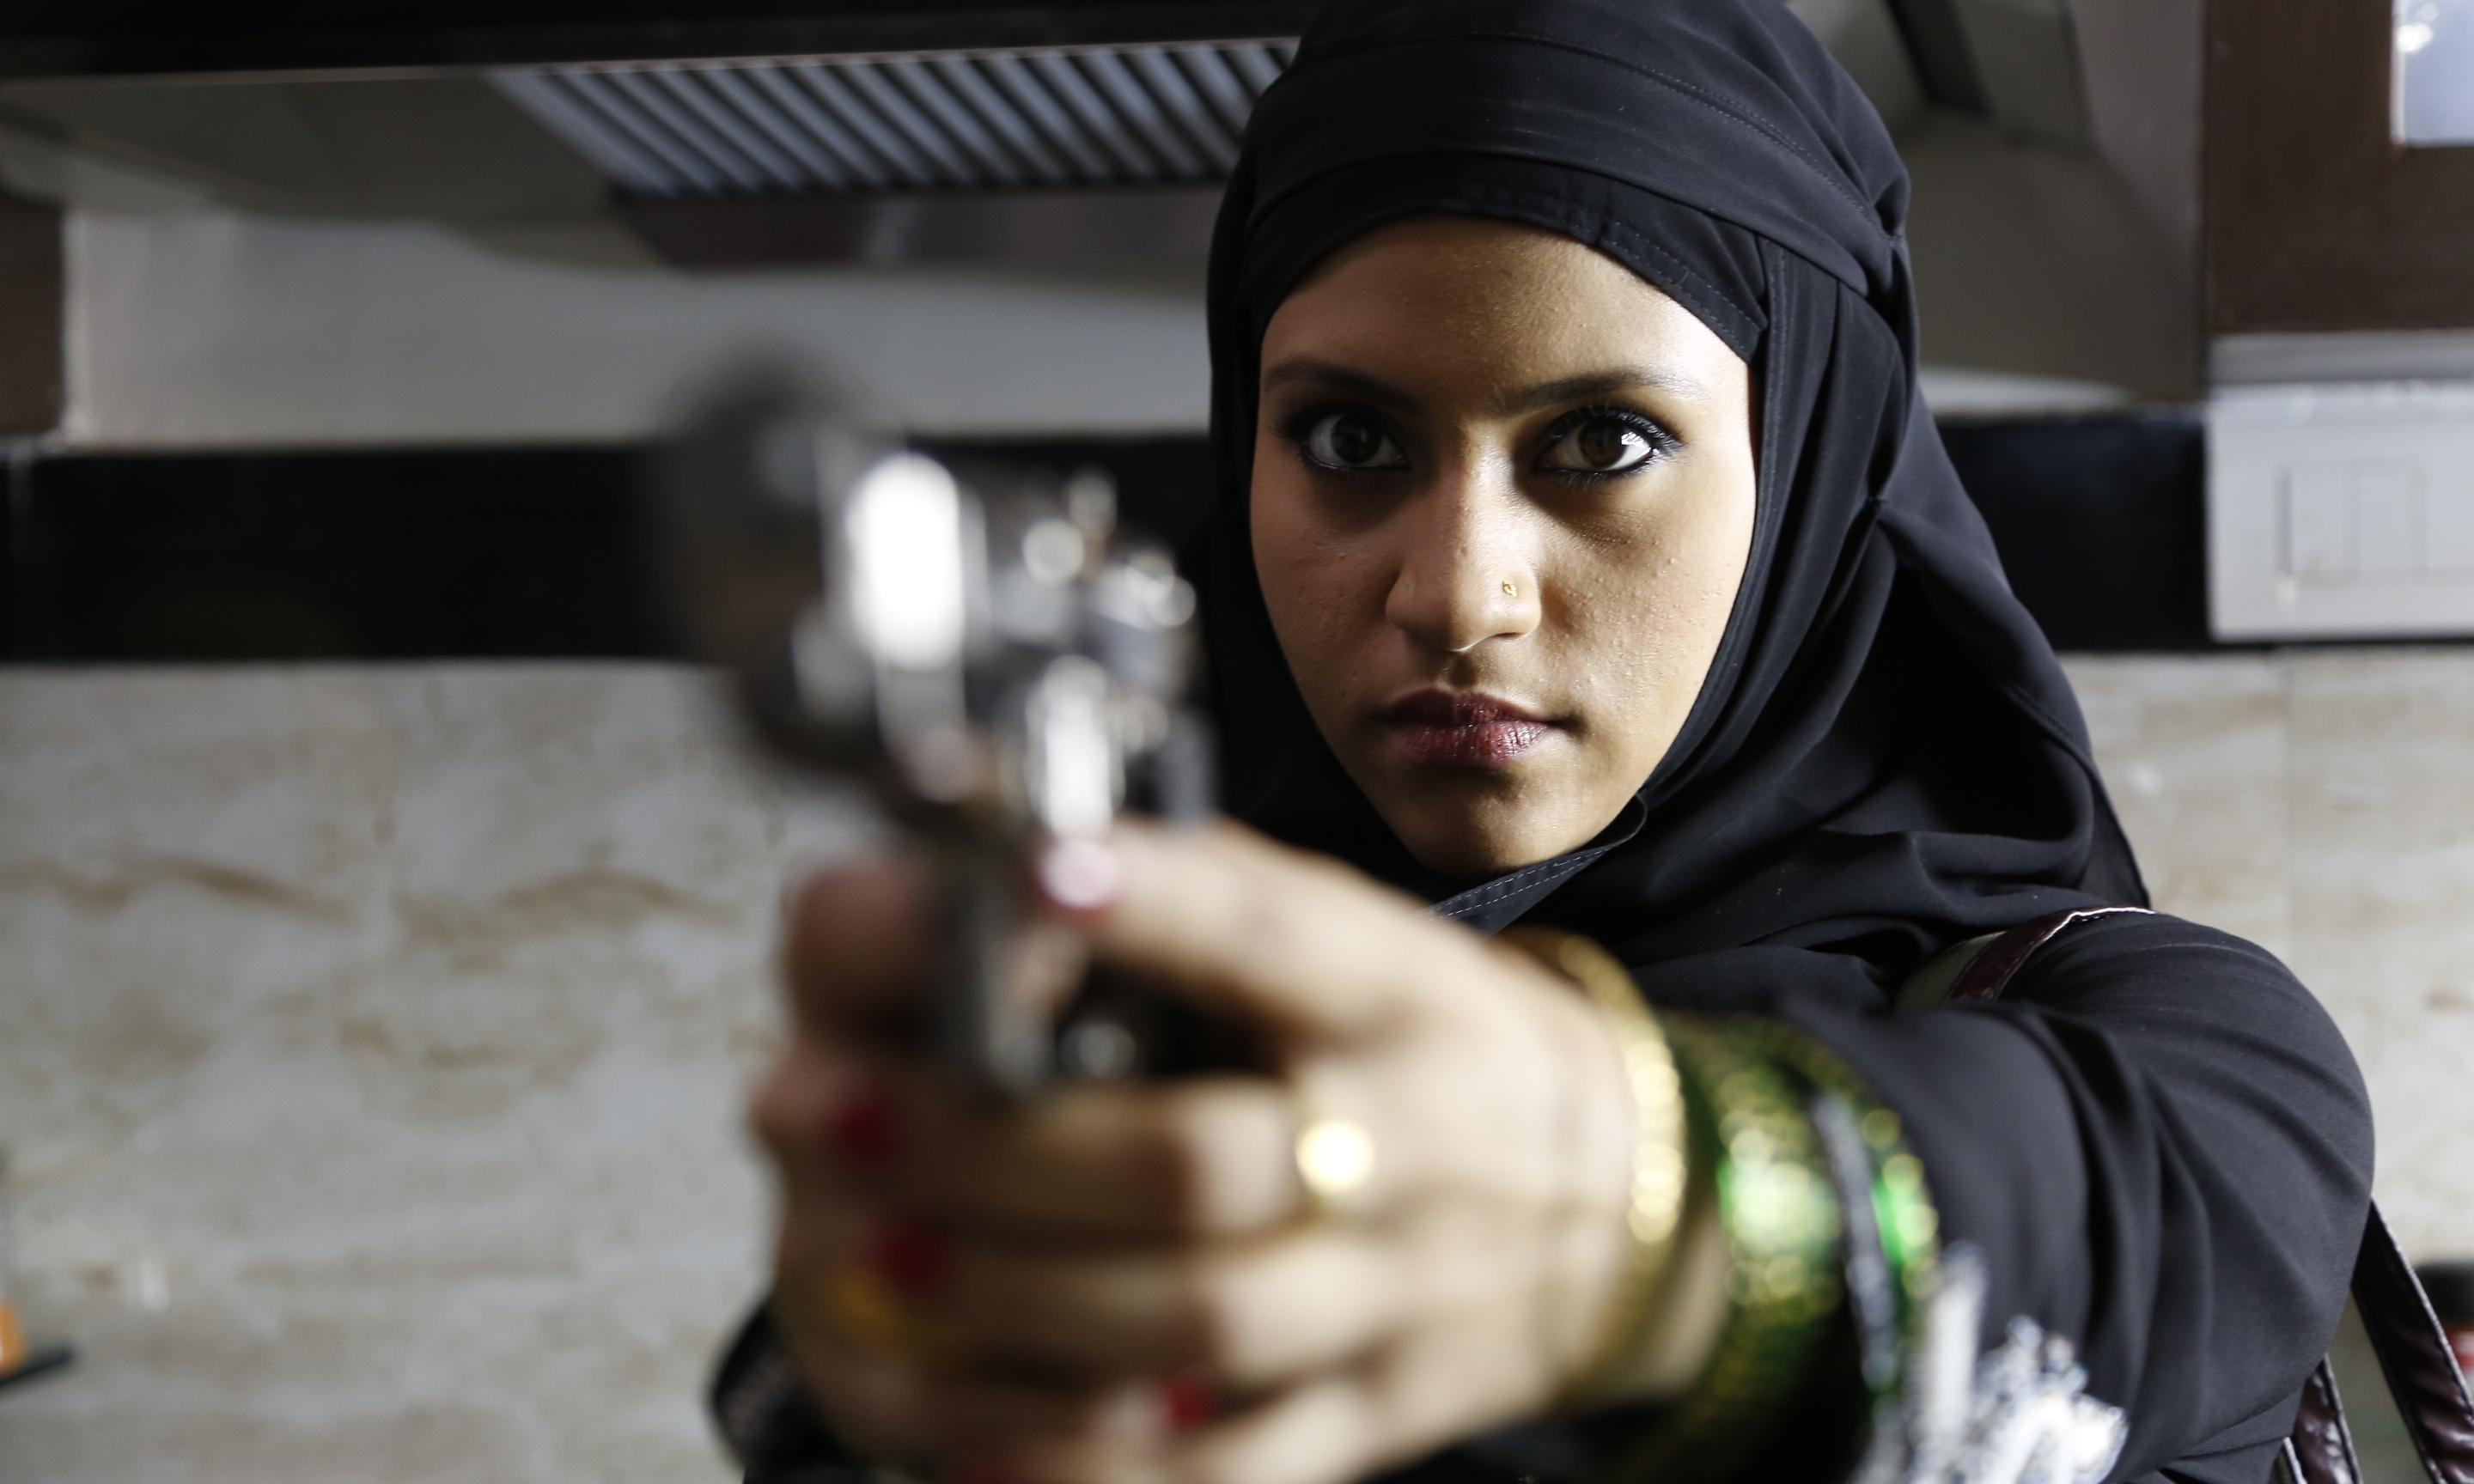 Lipstick Under My Burkha's release hailed as victory for Indian women